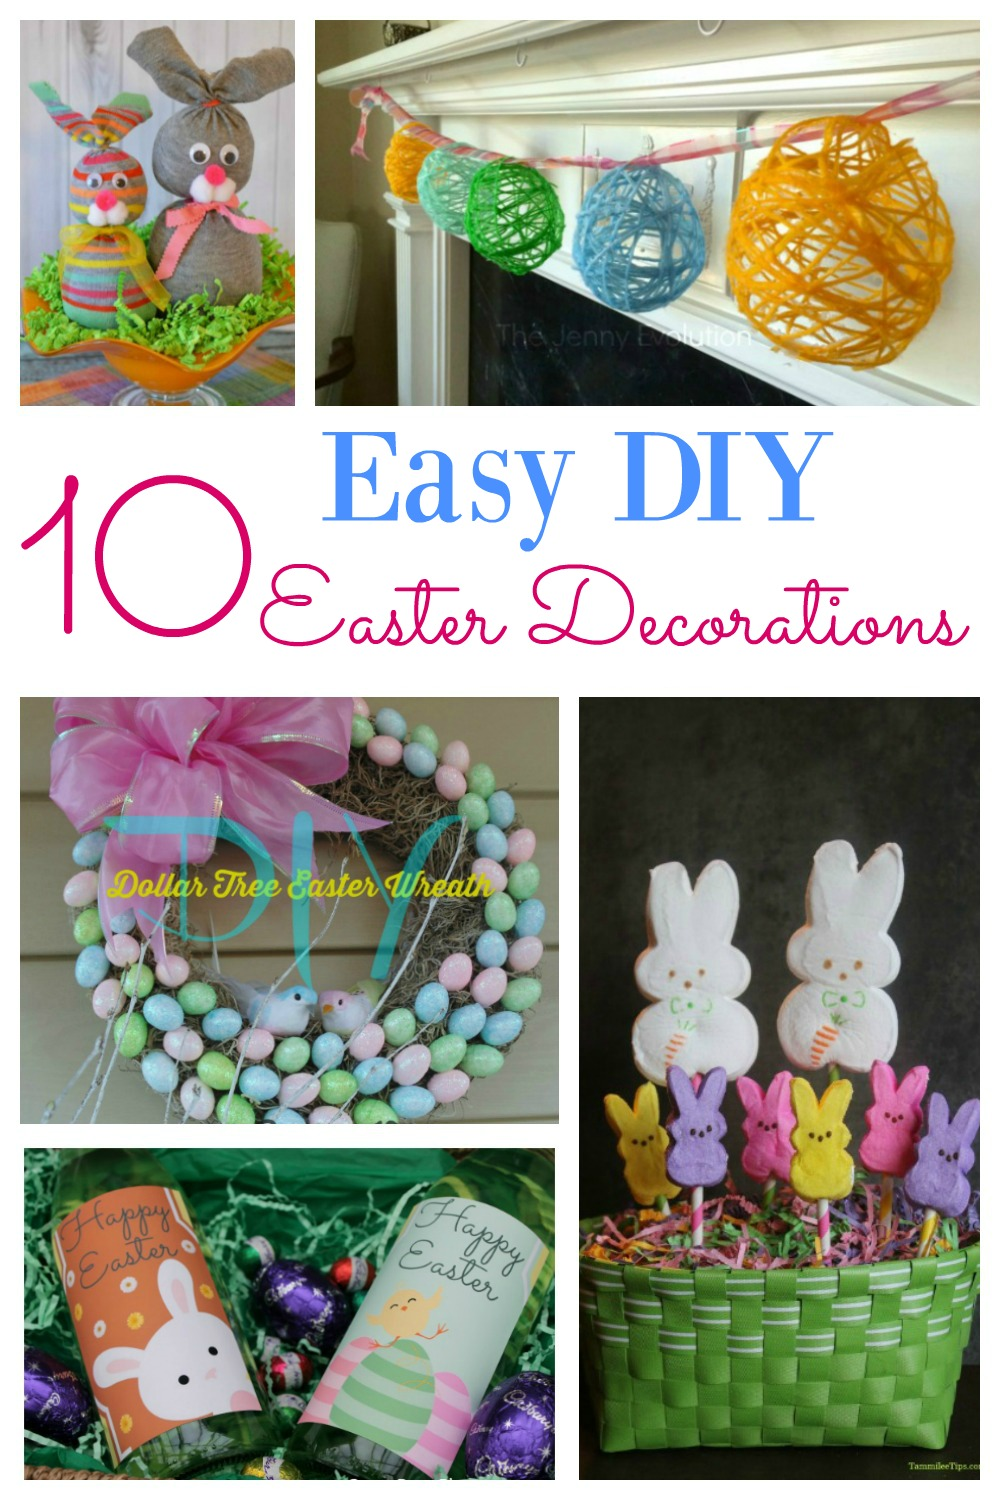 Easy diy easter decorations you must do this year